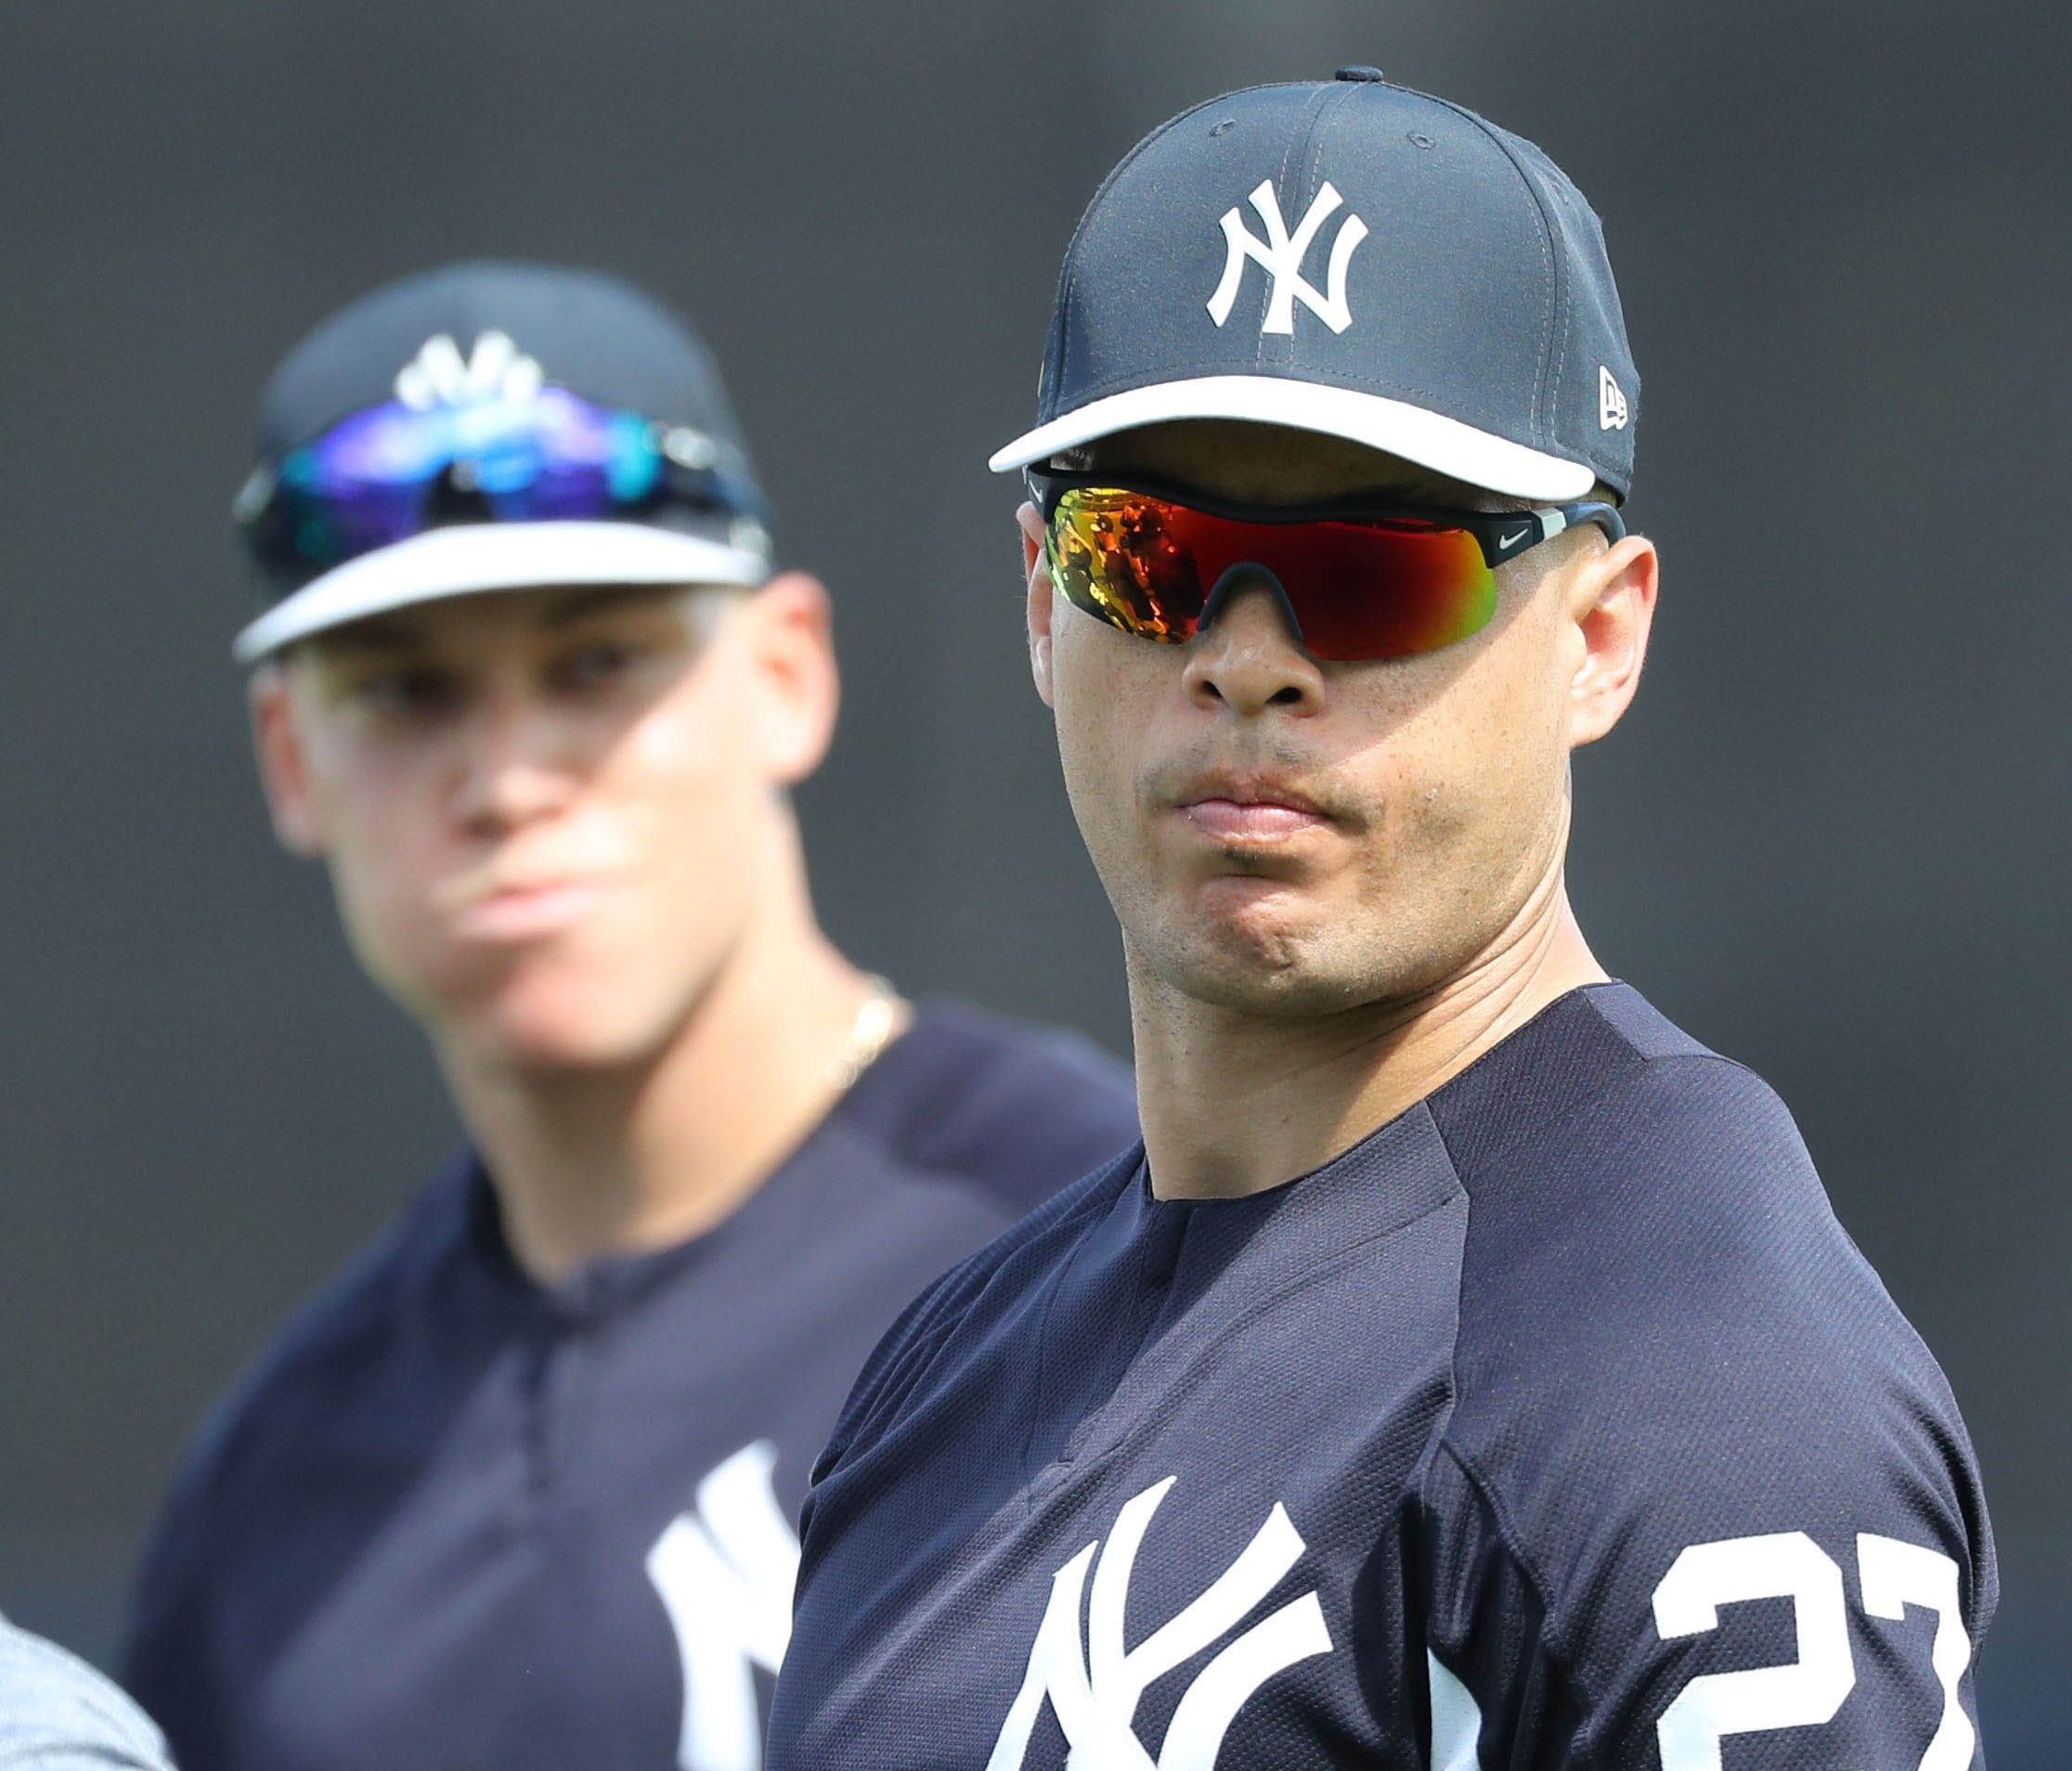 Giancarlo Stanton joined forces with Aaron Judge in the Bronx this season.